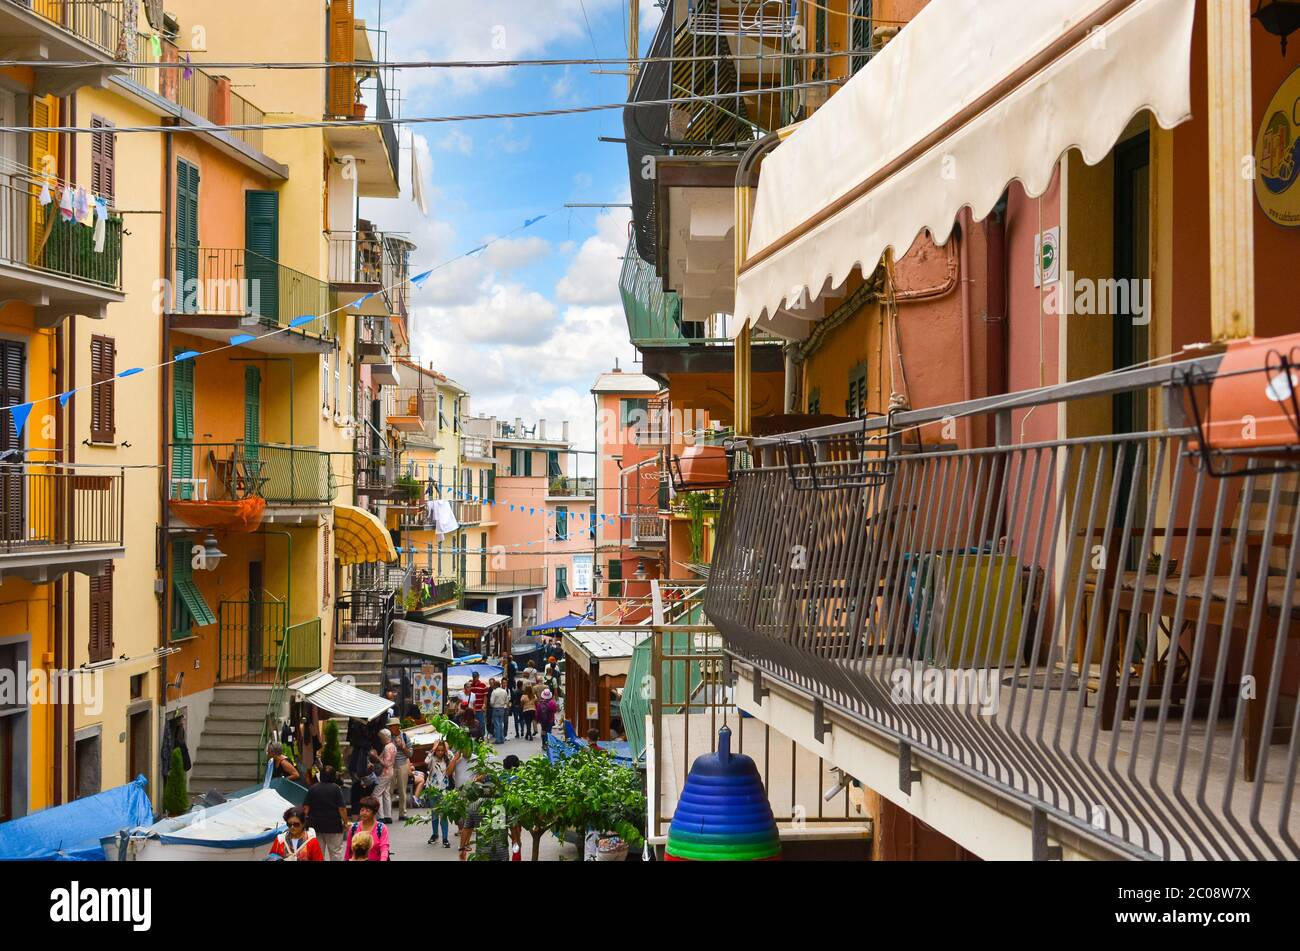 Balconies overlook the main street of Manarola Italy, part of the Cinque Terre, as tourists and locals enjoy an afternoon. Stock Photo